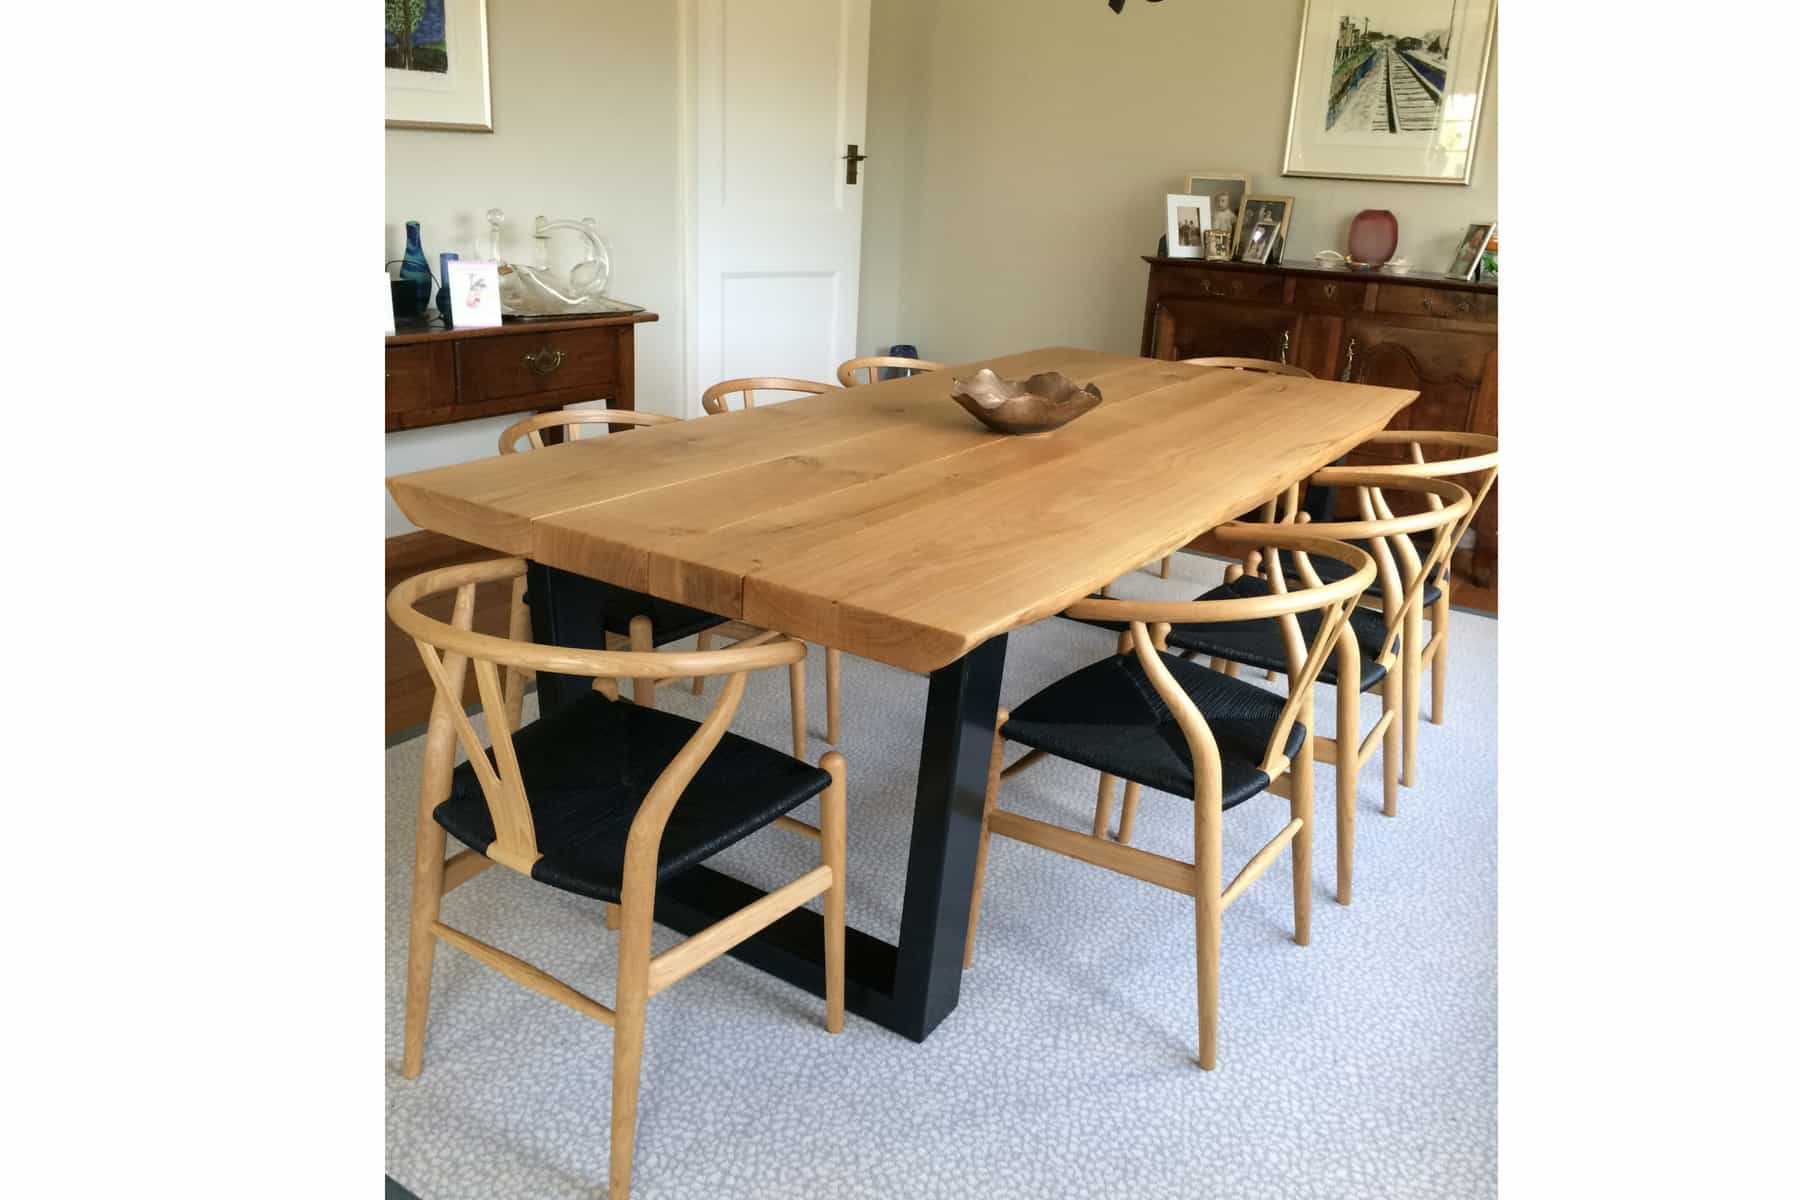 rustic dining table and chairs project 578 Abacus Tables image 1